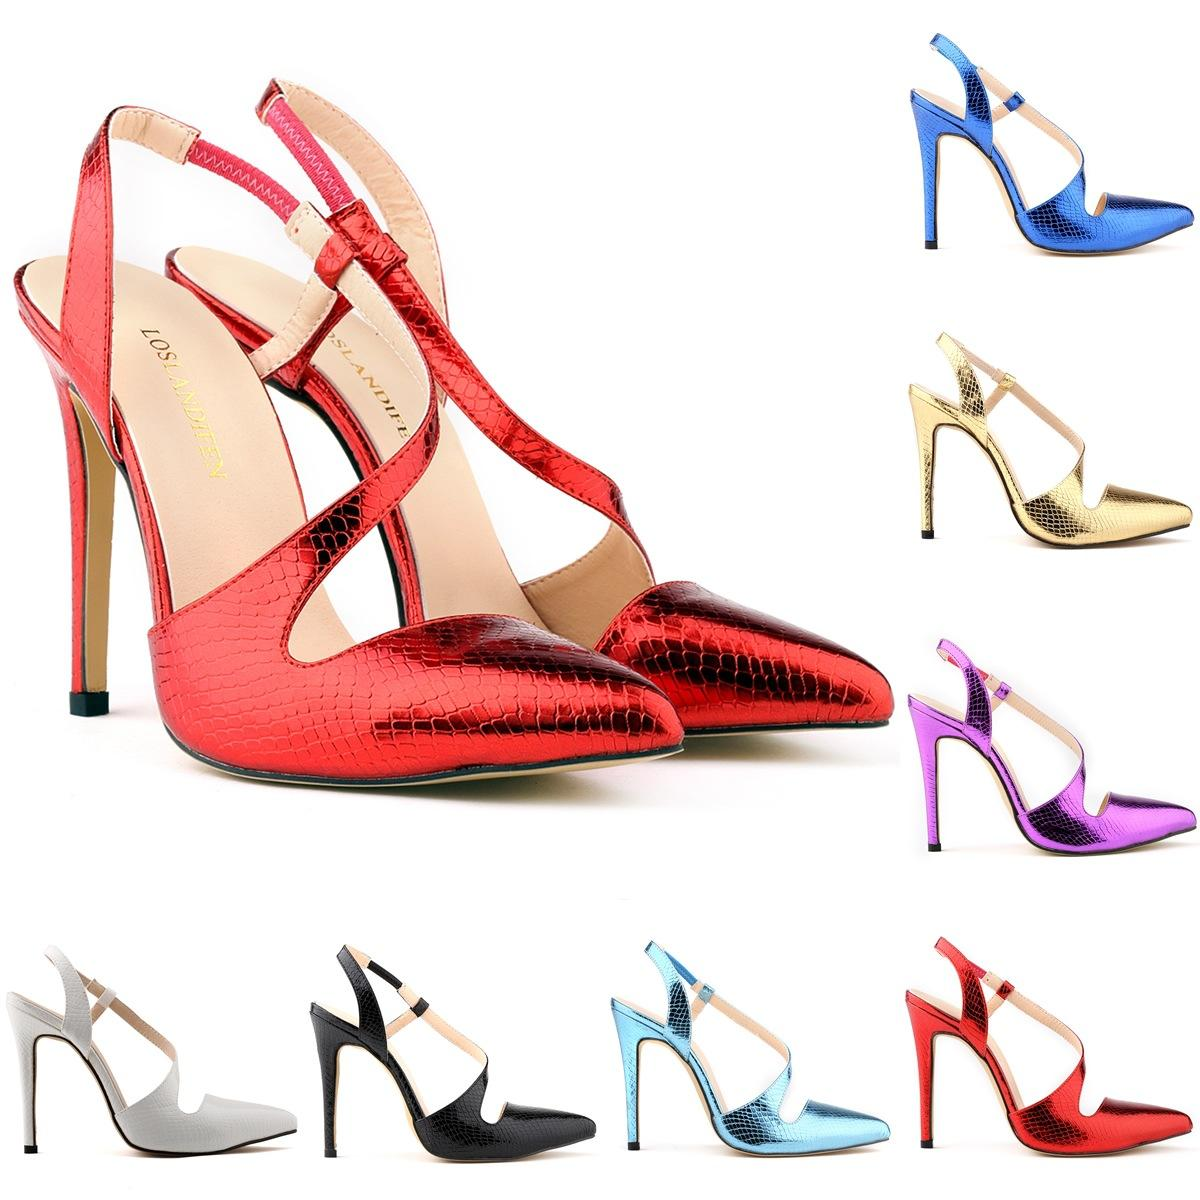 7f106ed624a3 Womens Stilettos High Heels Crocodile Grain Stilettos Pointed Toe Ankle  Strap Wedges Platform Sexy Shoes US Size 4-11 D0093 Women Shoes Shoes High  Heels ...